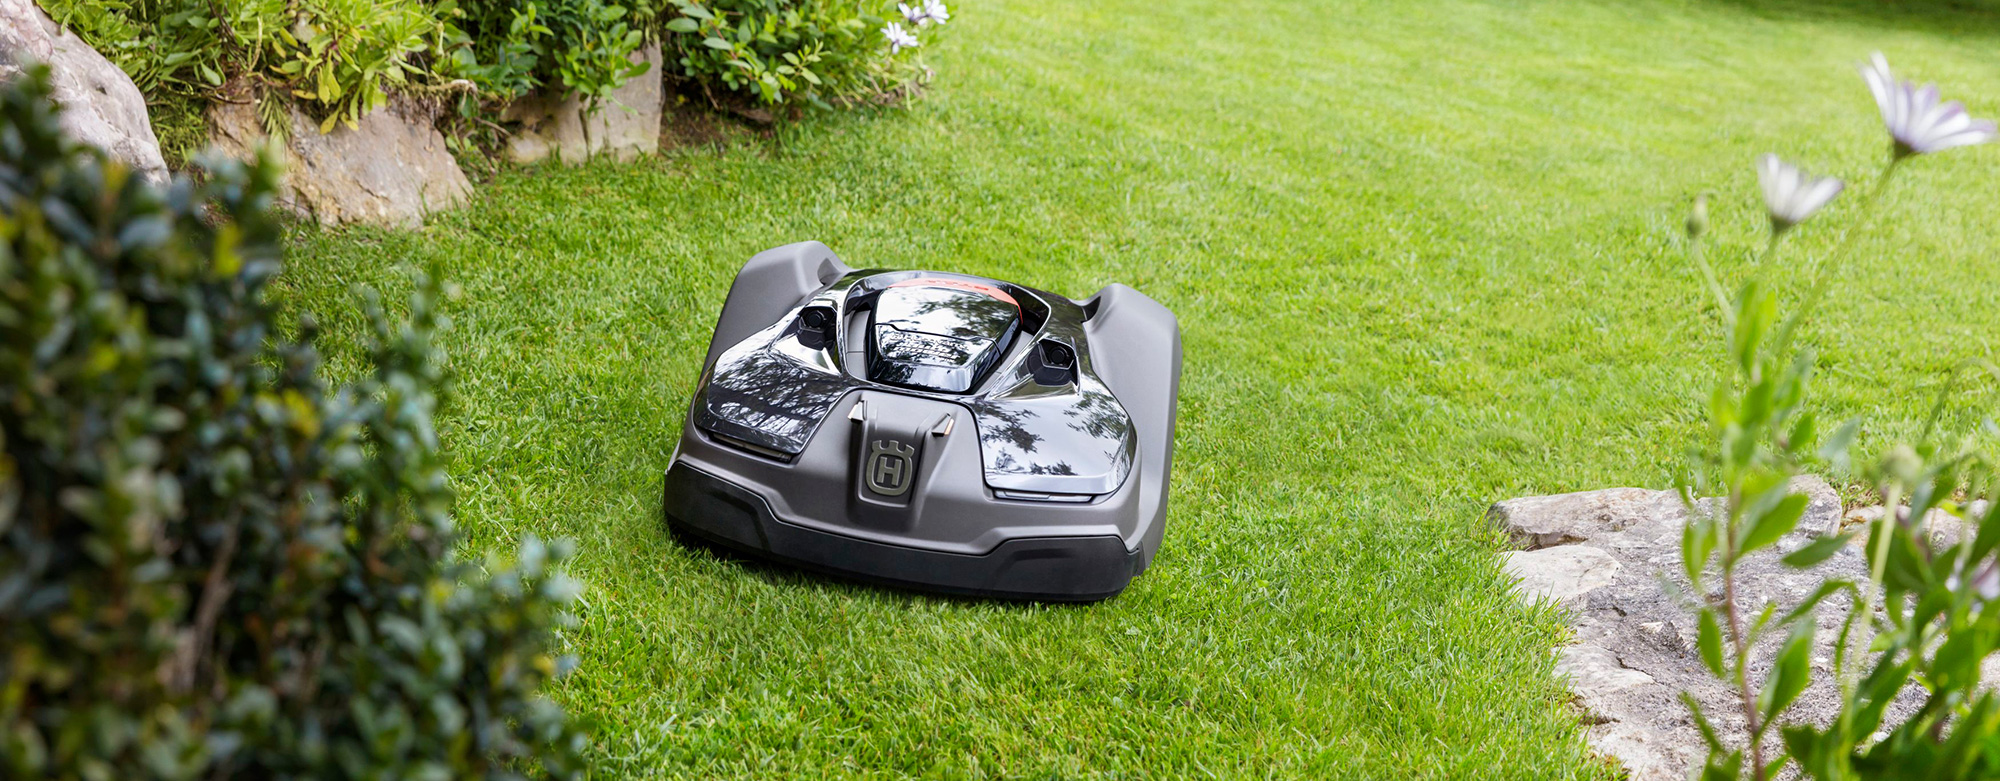 Robotic mowers from Husqvarna